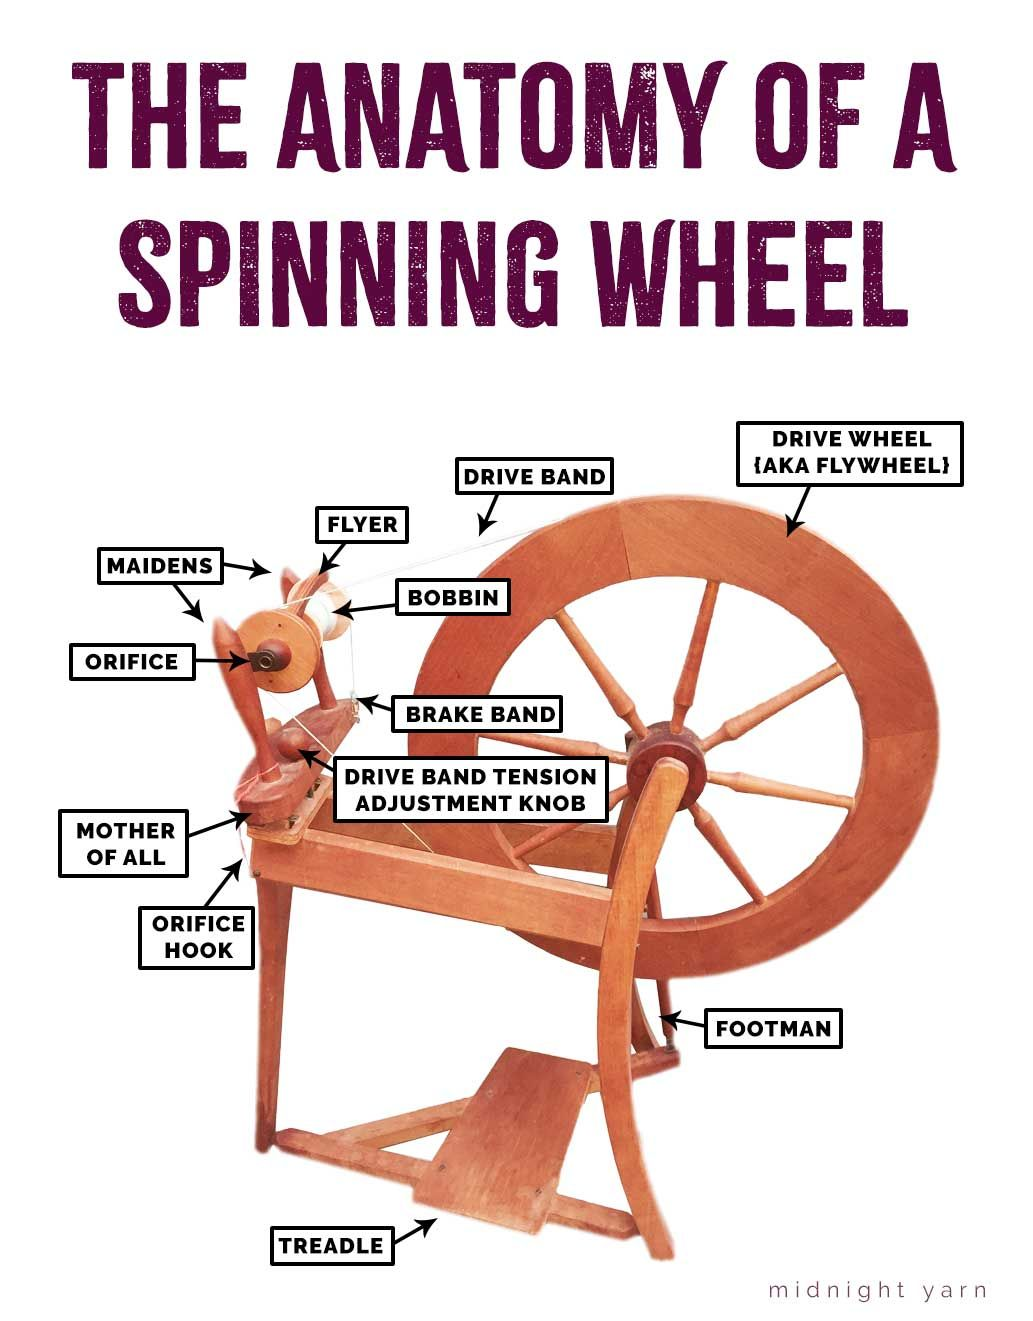 The Anatomy Of Spinning Wheel A Labeled Diagram Of